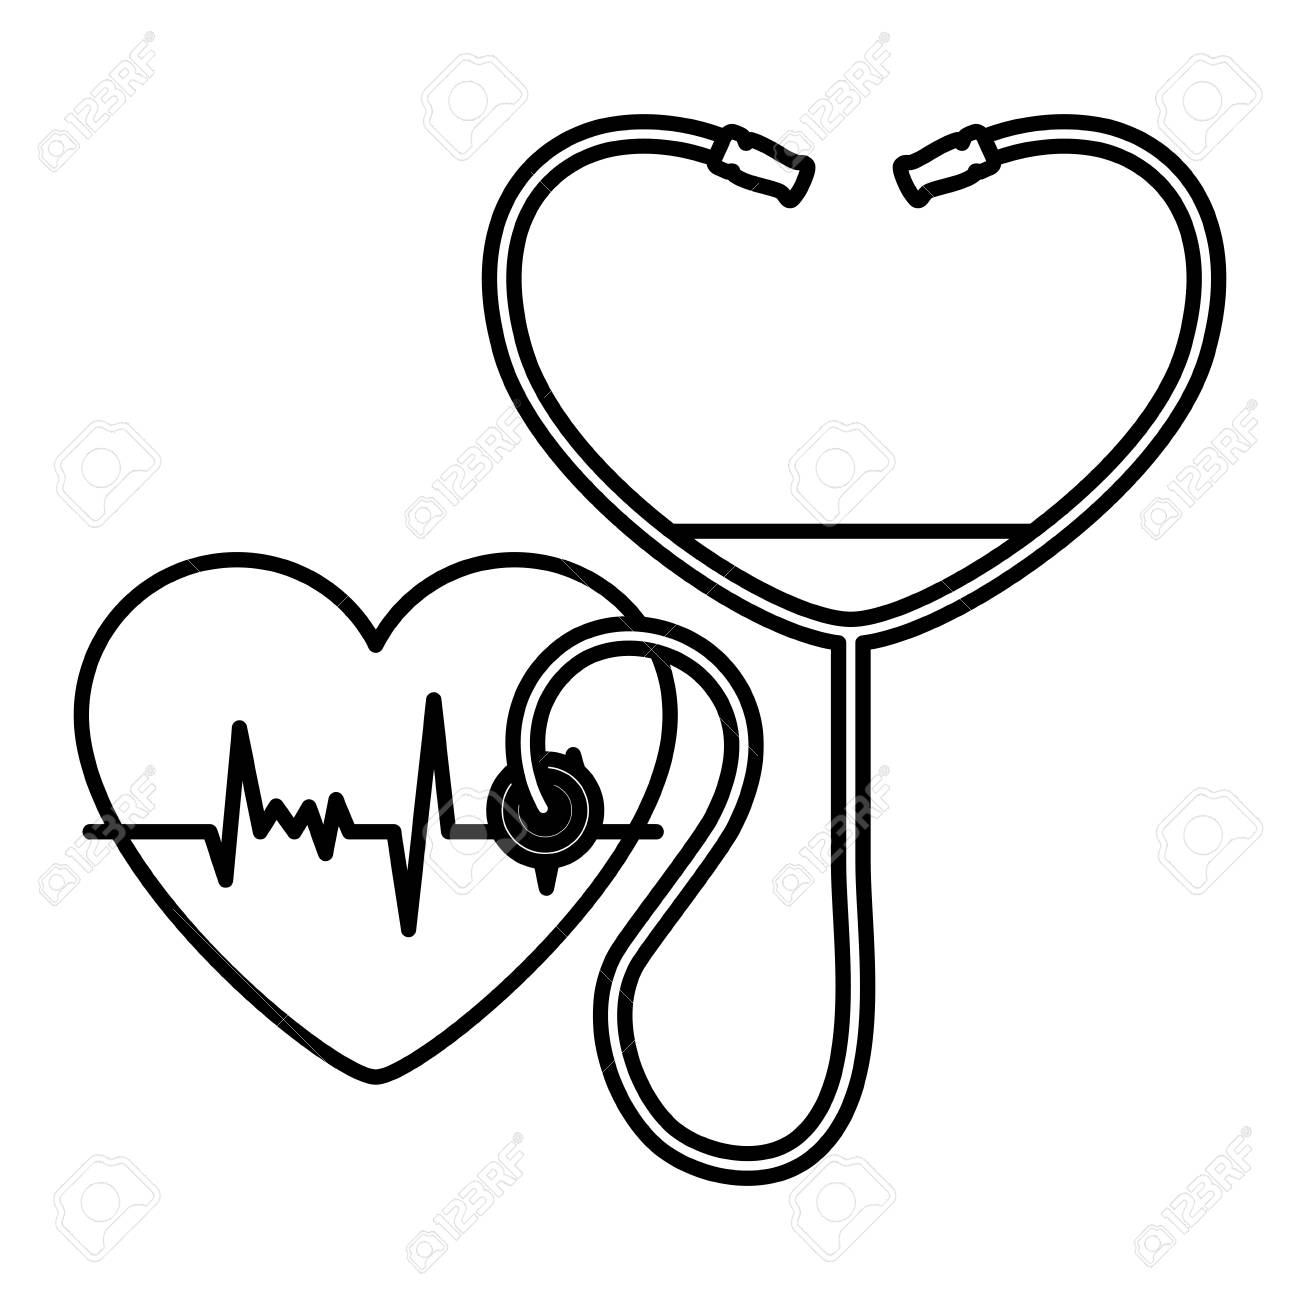 heart cardiology with stethoscope vector illustration design - 102357882